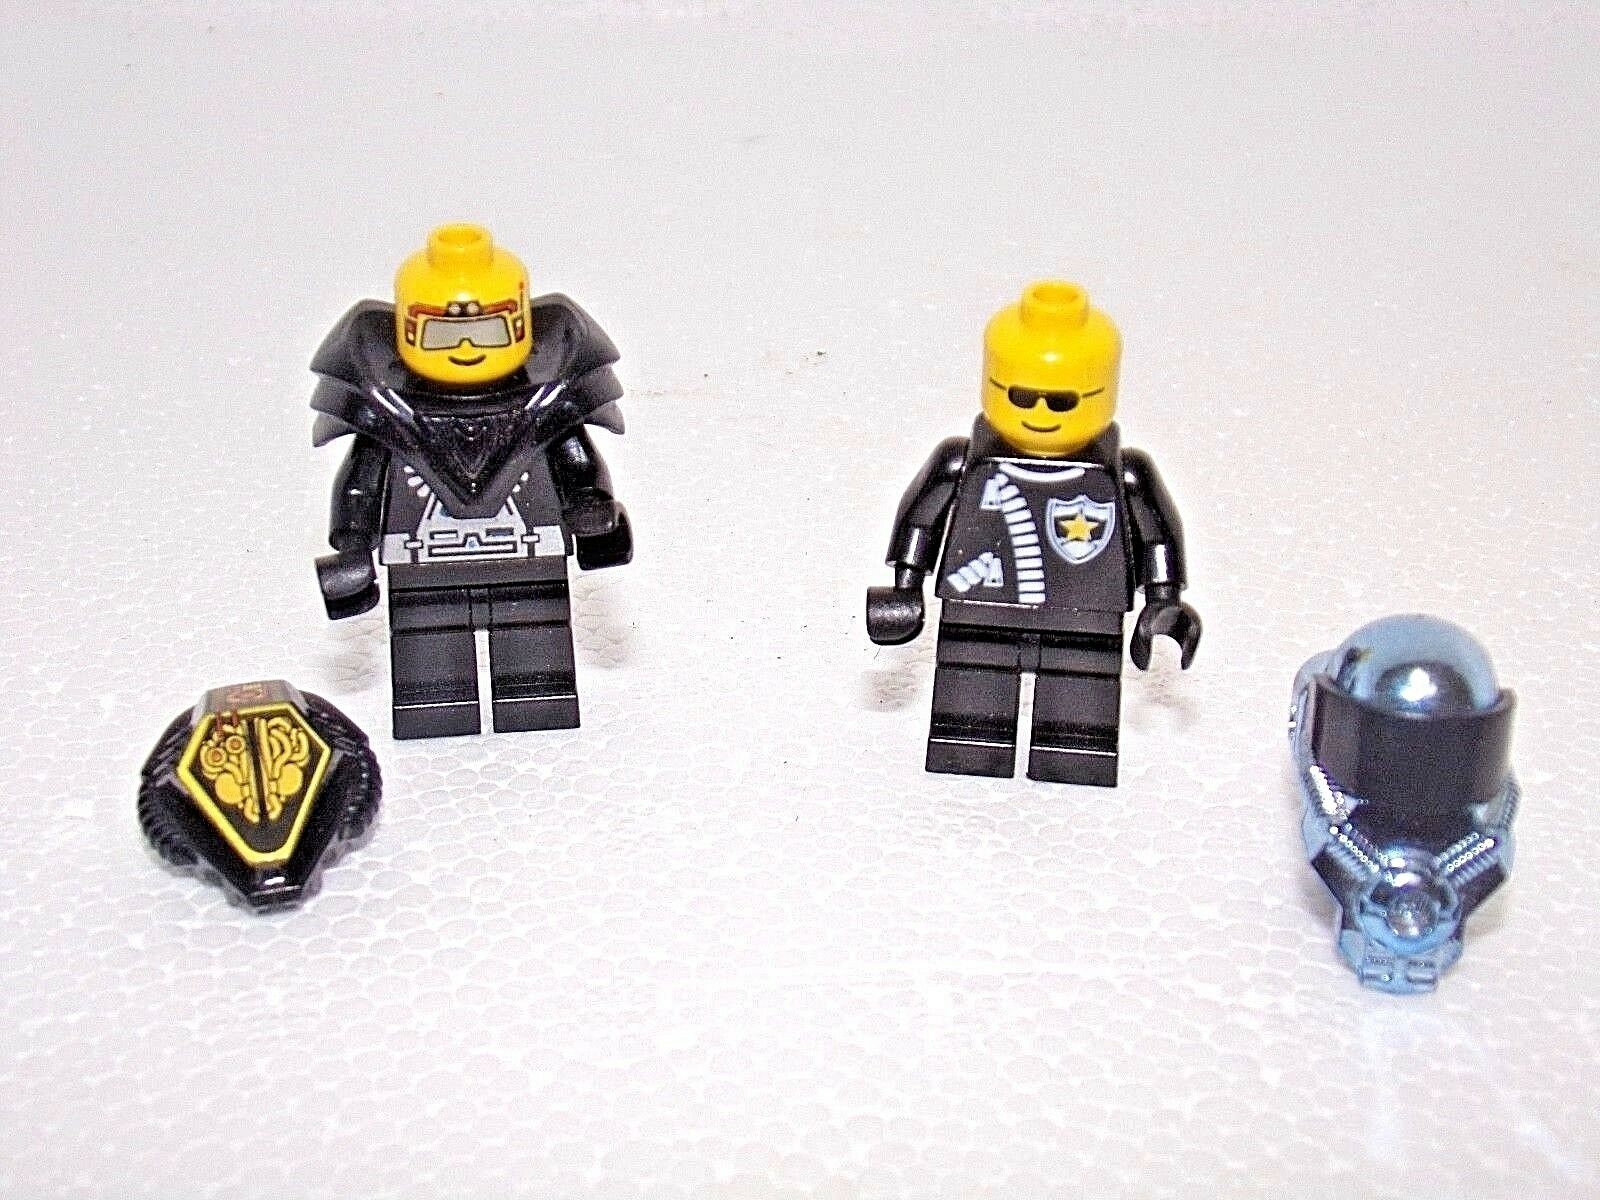 Lego Vintage Classic Space Minifigure With Helmets and Shoulder-pads   Fast Ship